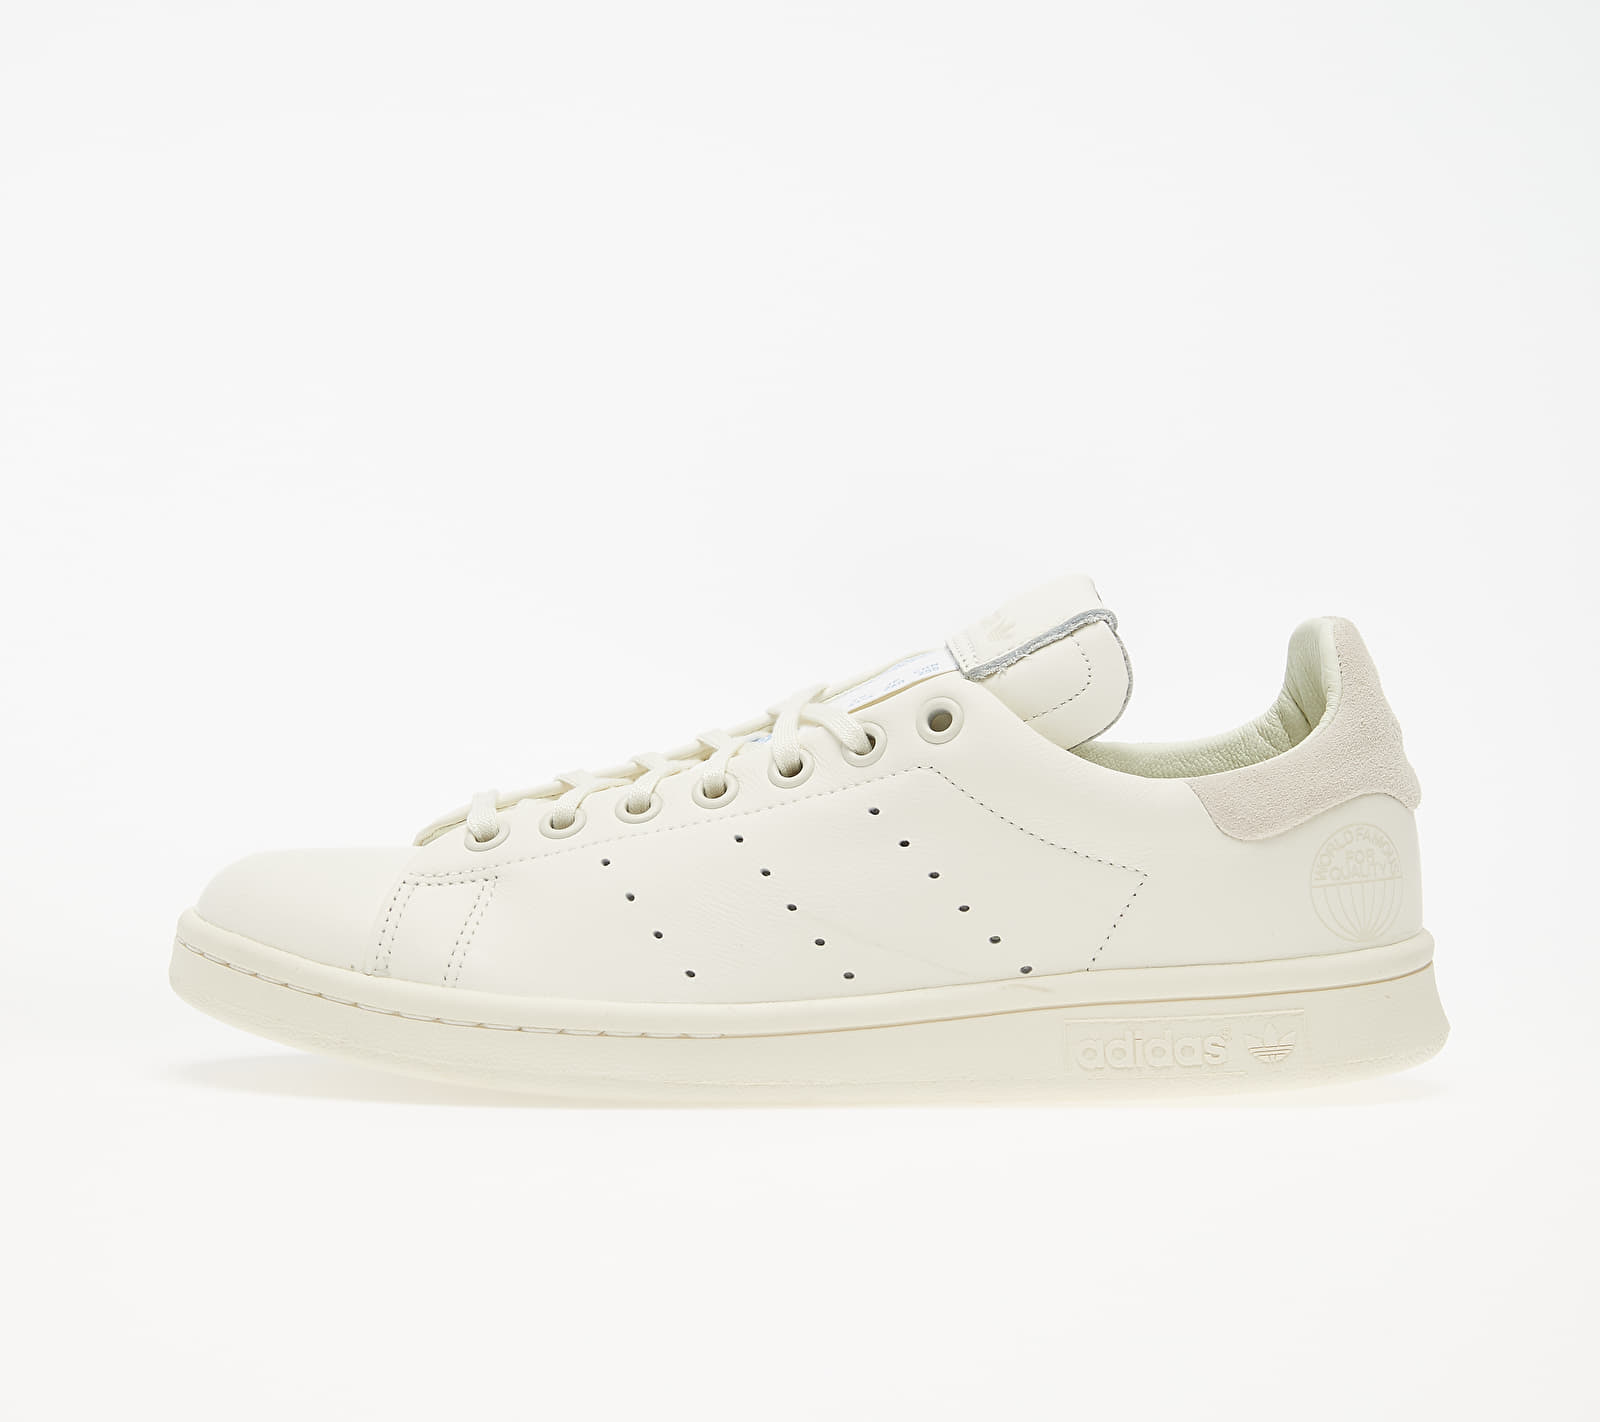 adidas Stan Smith Recon Off White/ Off White/ Off White EUR 43 1/3